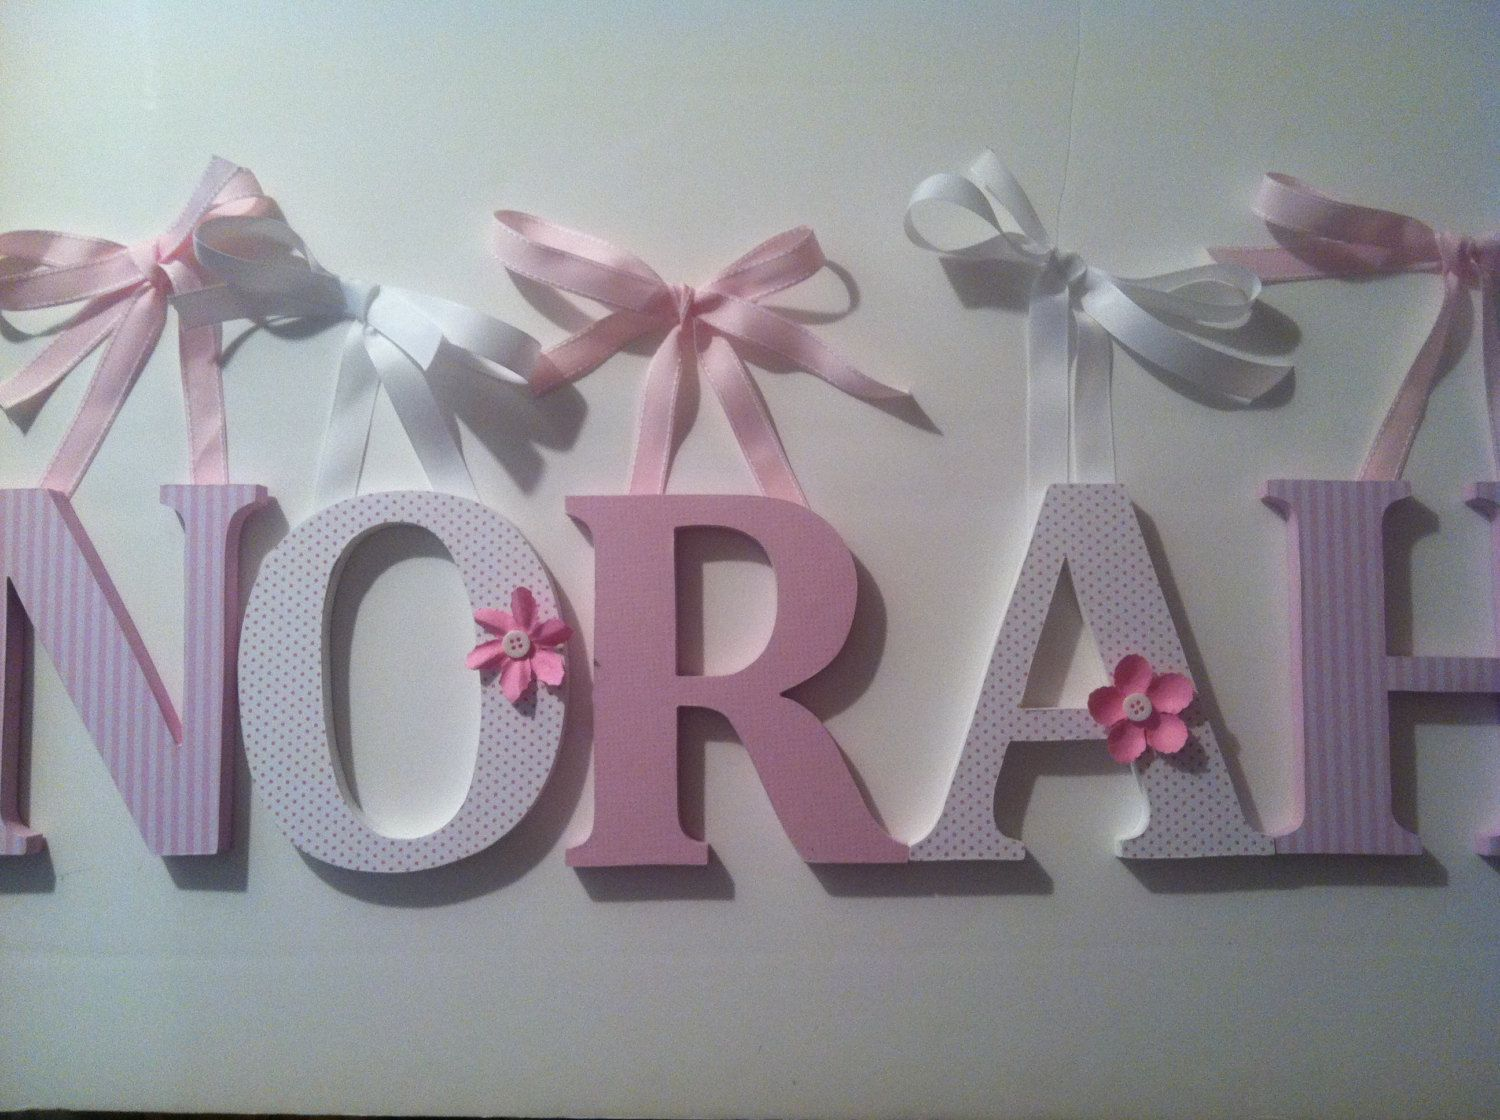 Alphabet Wooden Letters For Nursery In Pink And White